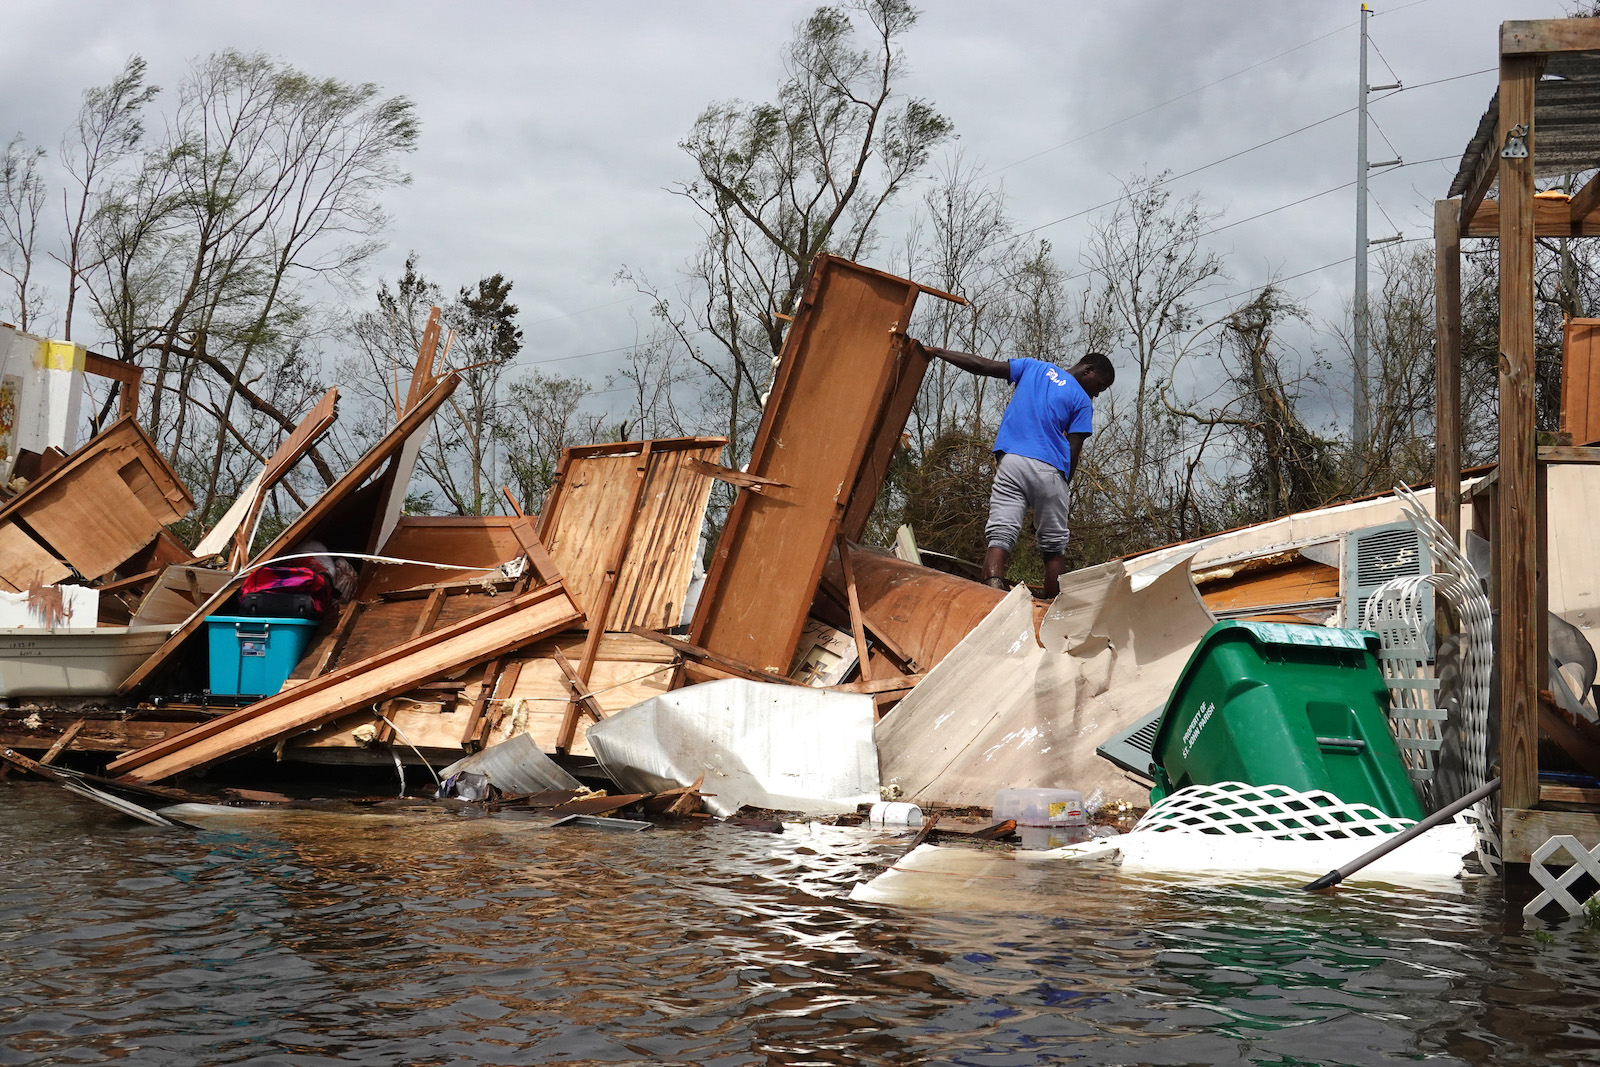 A man stands on top of a pile of furniture and home furnishings destroyed during Hurricane Ida.